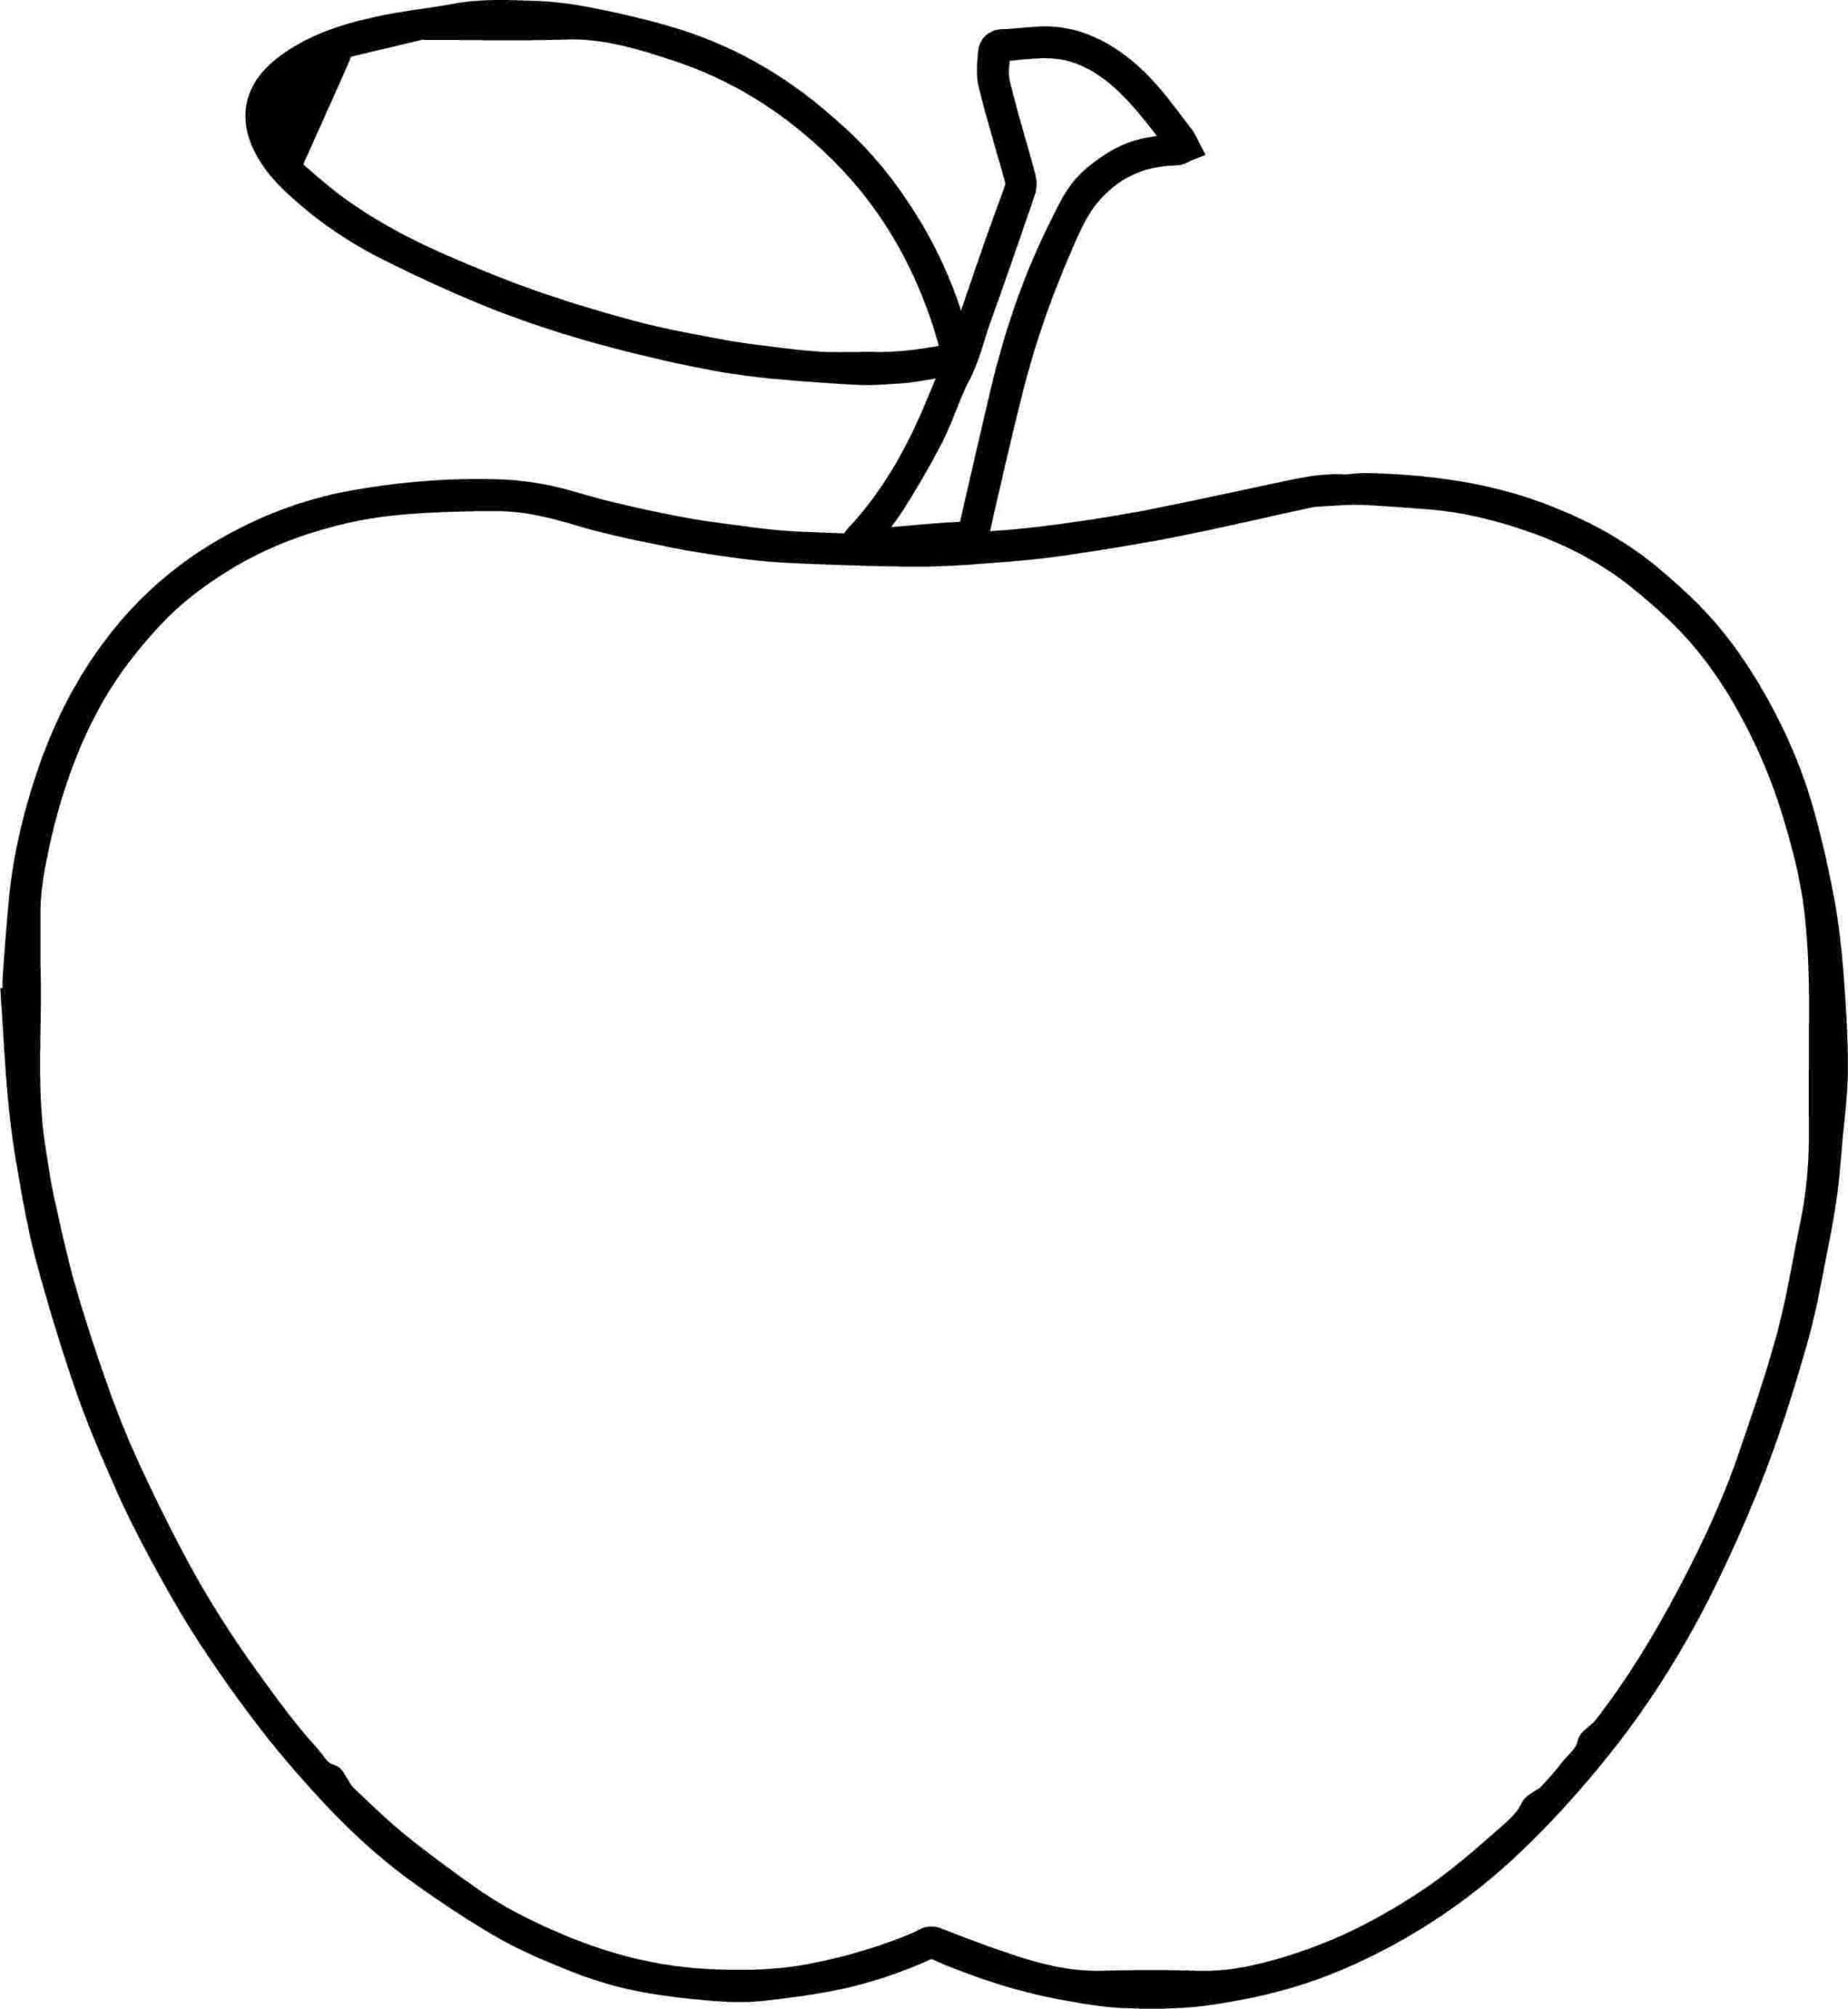 remarkable easy coloring for kids apple to print super simple halloween worksheets kindergarten printable color preschool and valentines scaled buzz math by number 5th grade